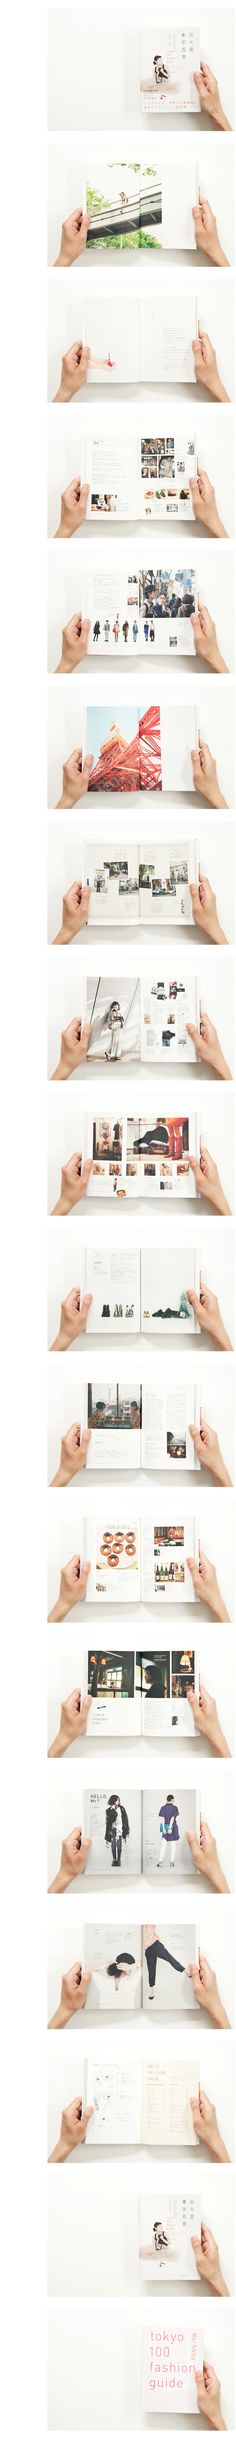 Exactly this style, very minimal and clean  日々是東京百景 tokyo 100 fashion guide